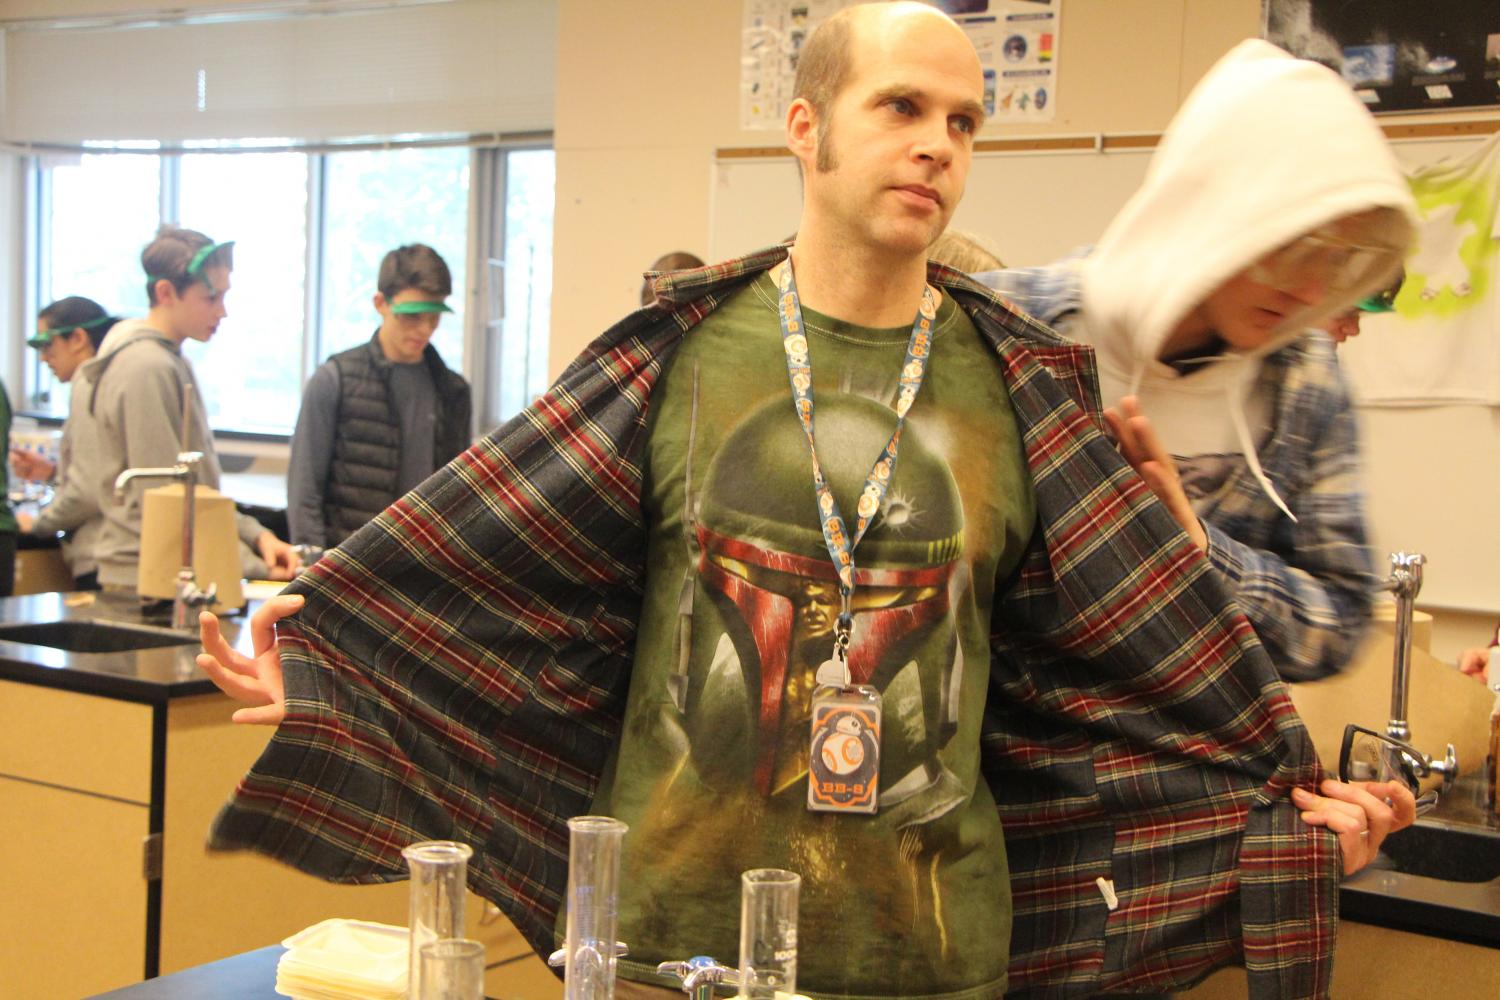 Showing+off+his+Star+Wars+Shirt.+Steve+Davala+has+a+passion+for+his+students%2C+Chemistry+and+science+fiction.